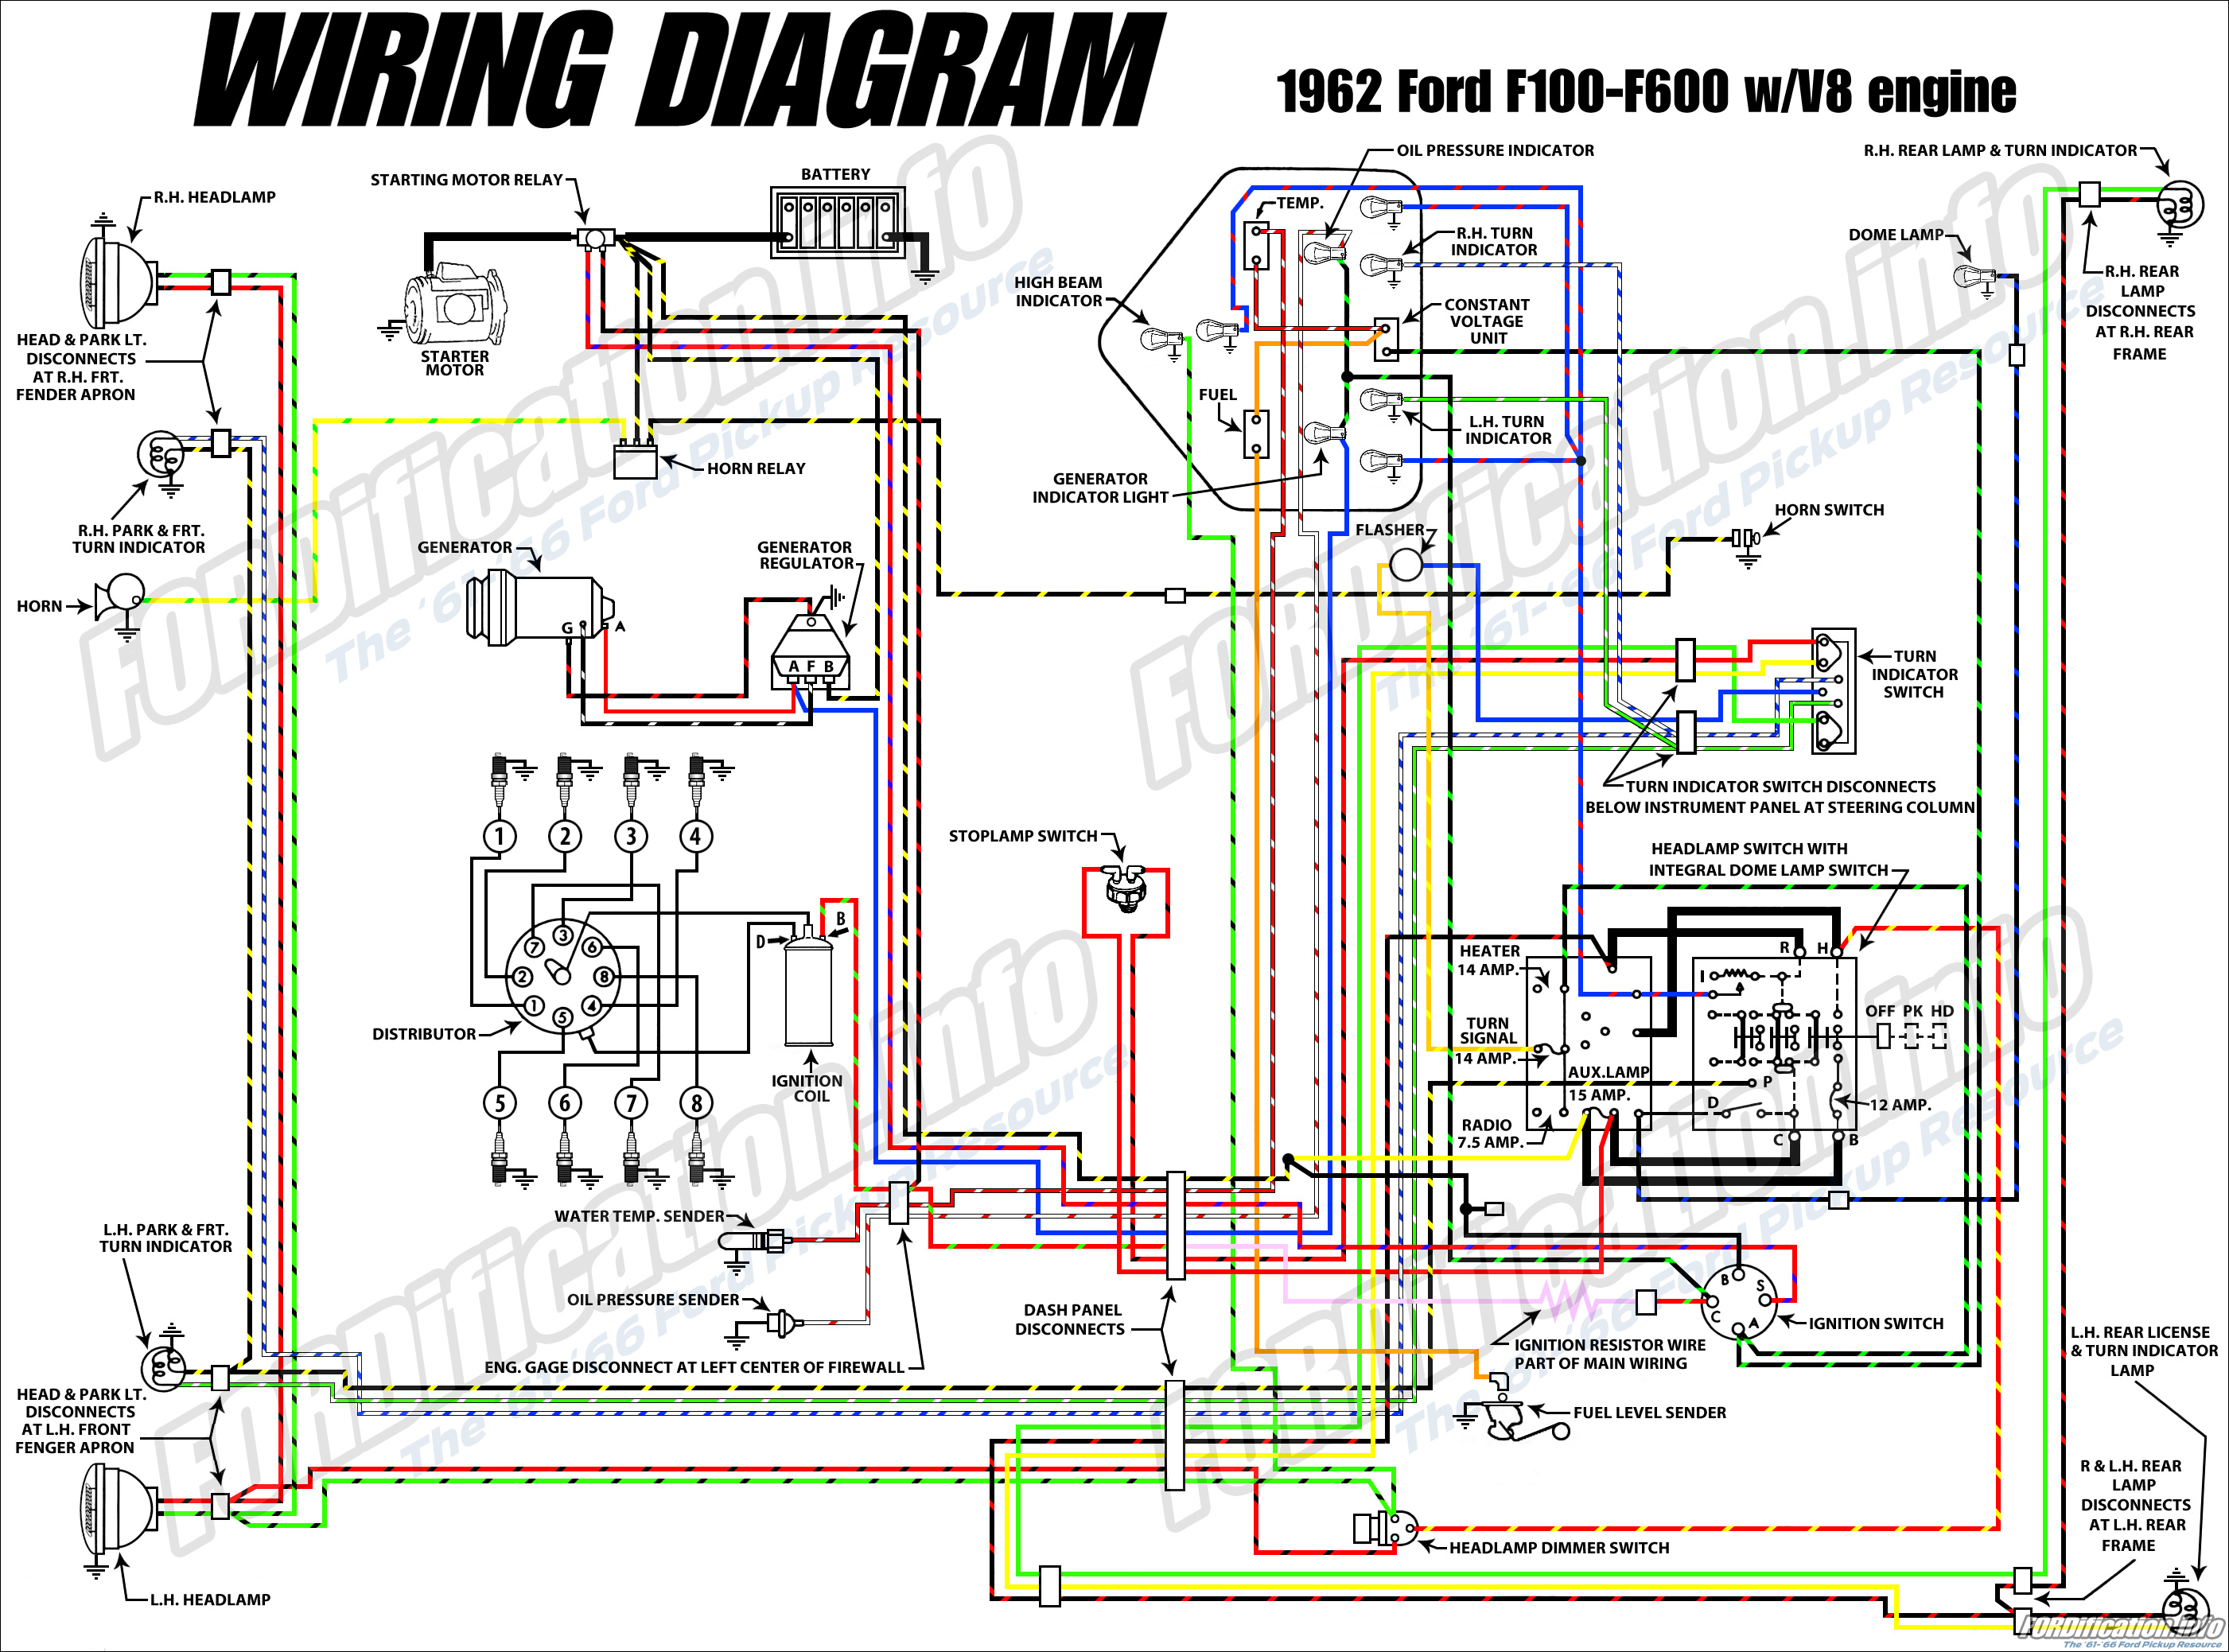 1962fordtruck_masterwiring 1962 ford truck wiring diagrams fordification info the '61 '66 truck wiring diagrams at bakdesigns.co